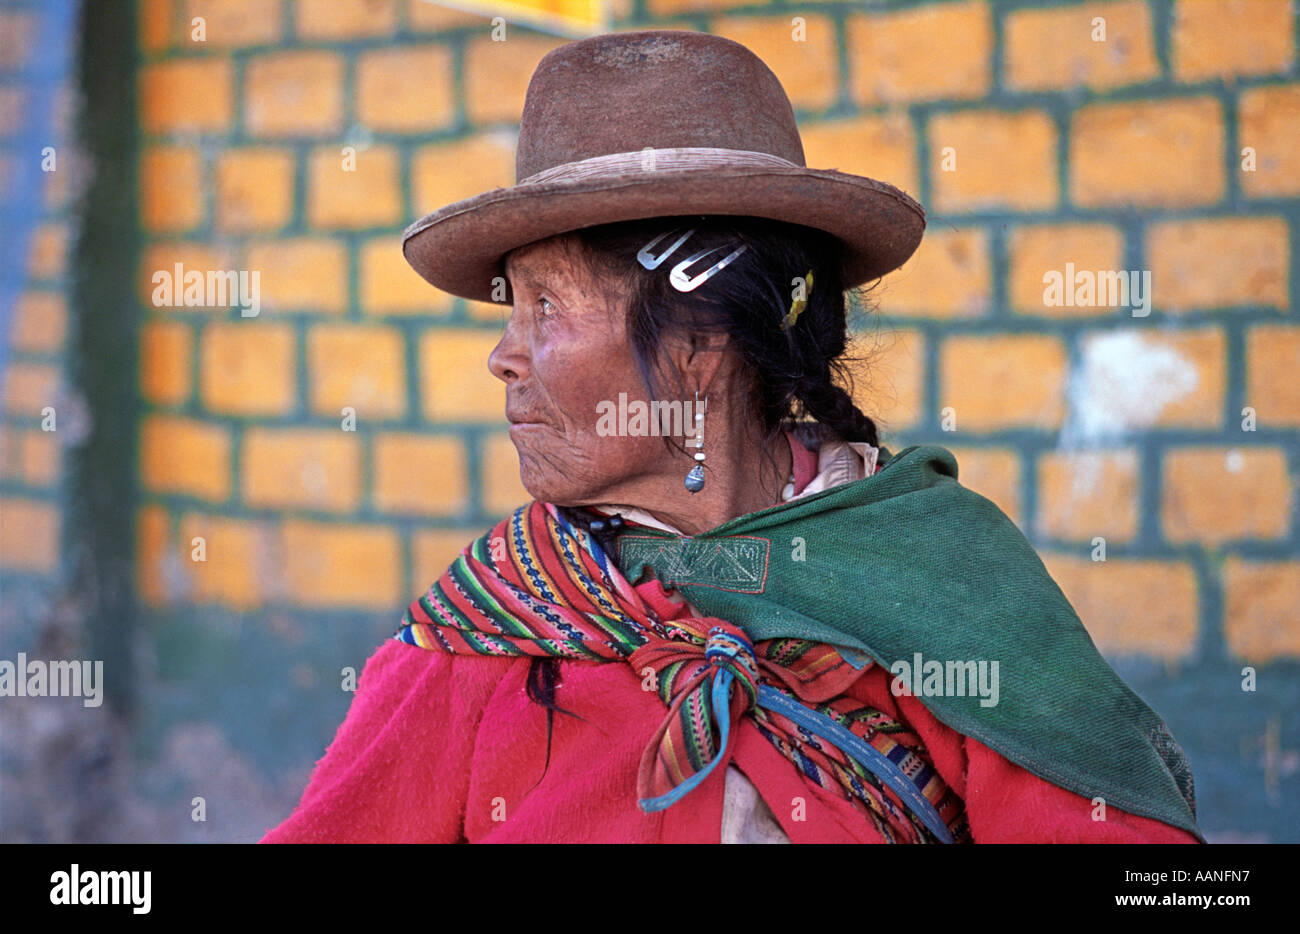 Elderly Peruvian woman in Andean style dress at Hiuaraz market Northern Peru South America - Stock Image